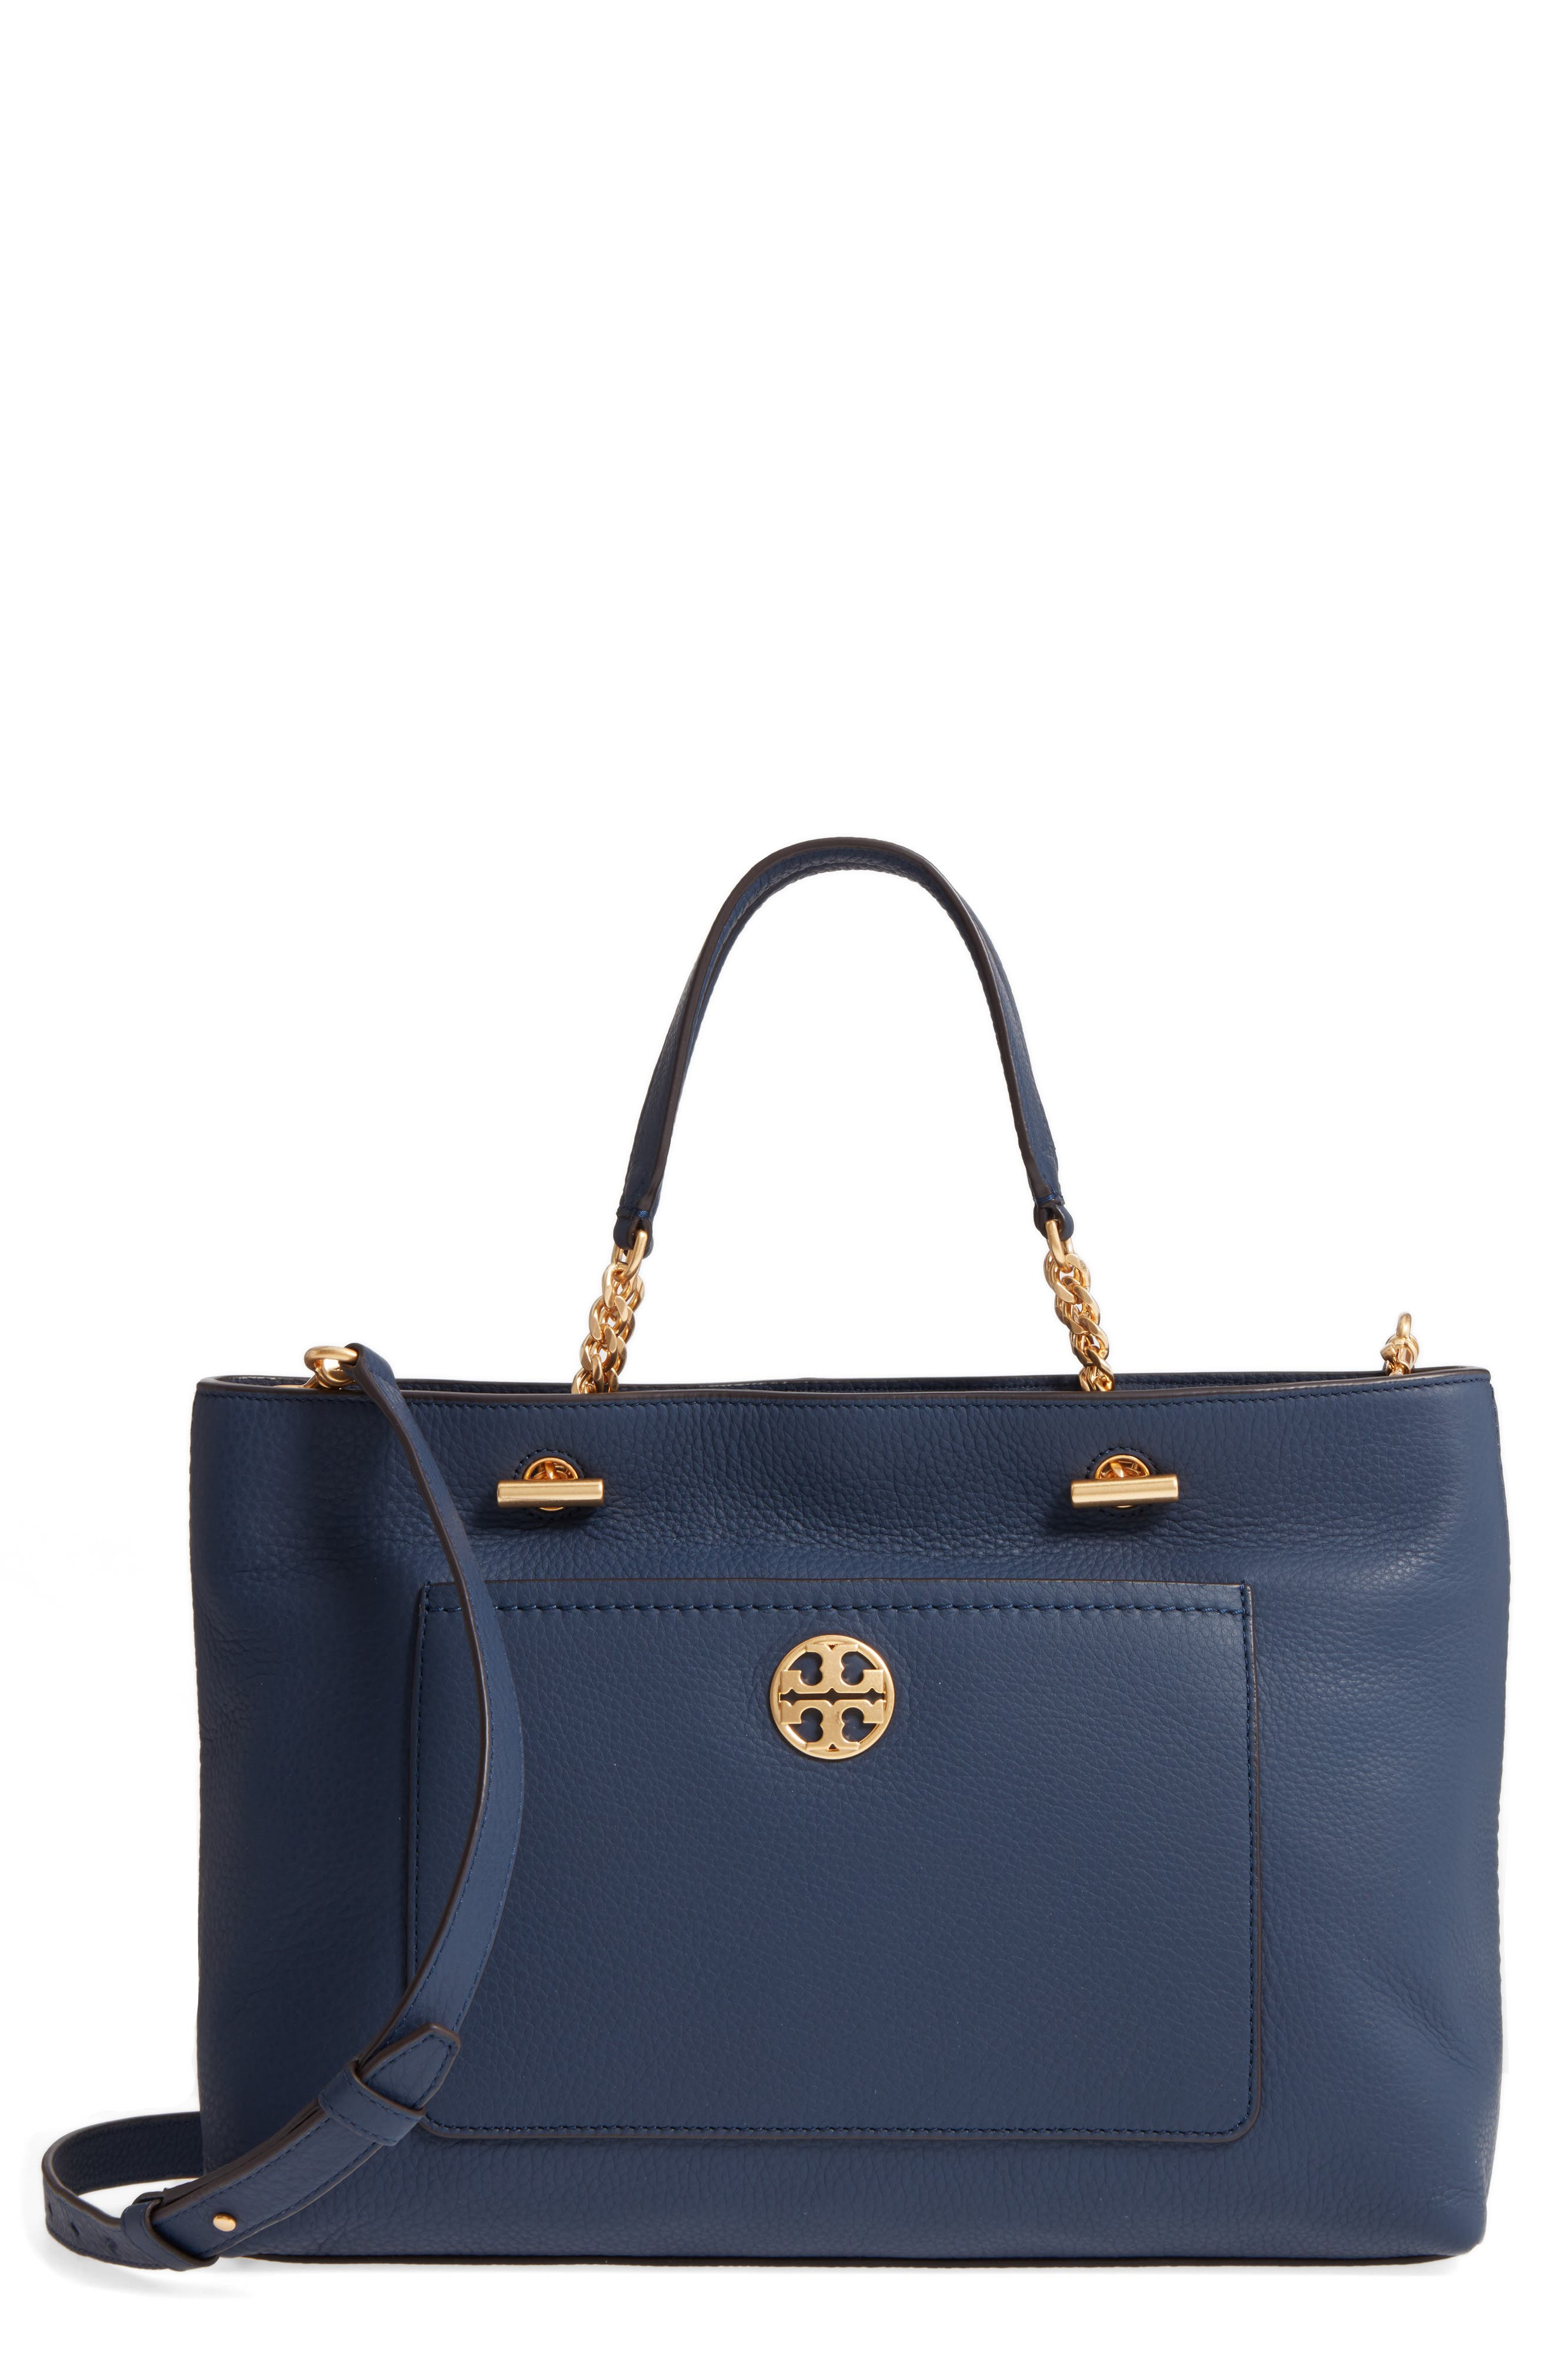 Tory Burch Chelsea Leather Satchel